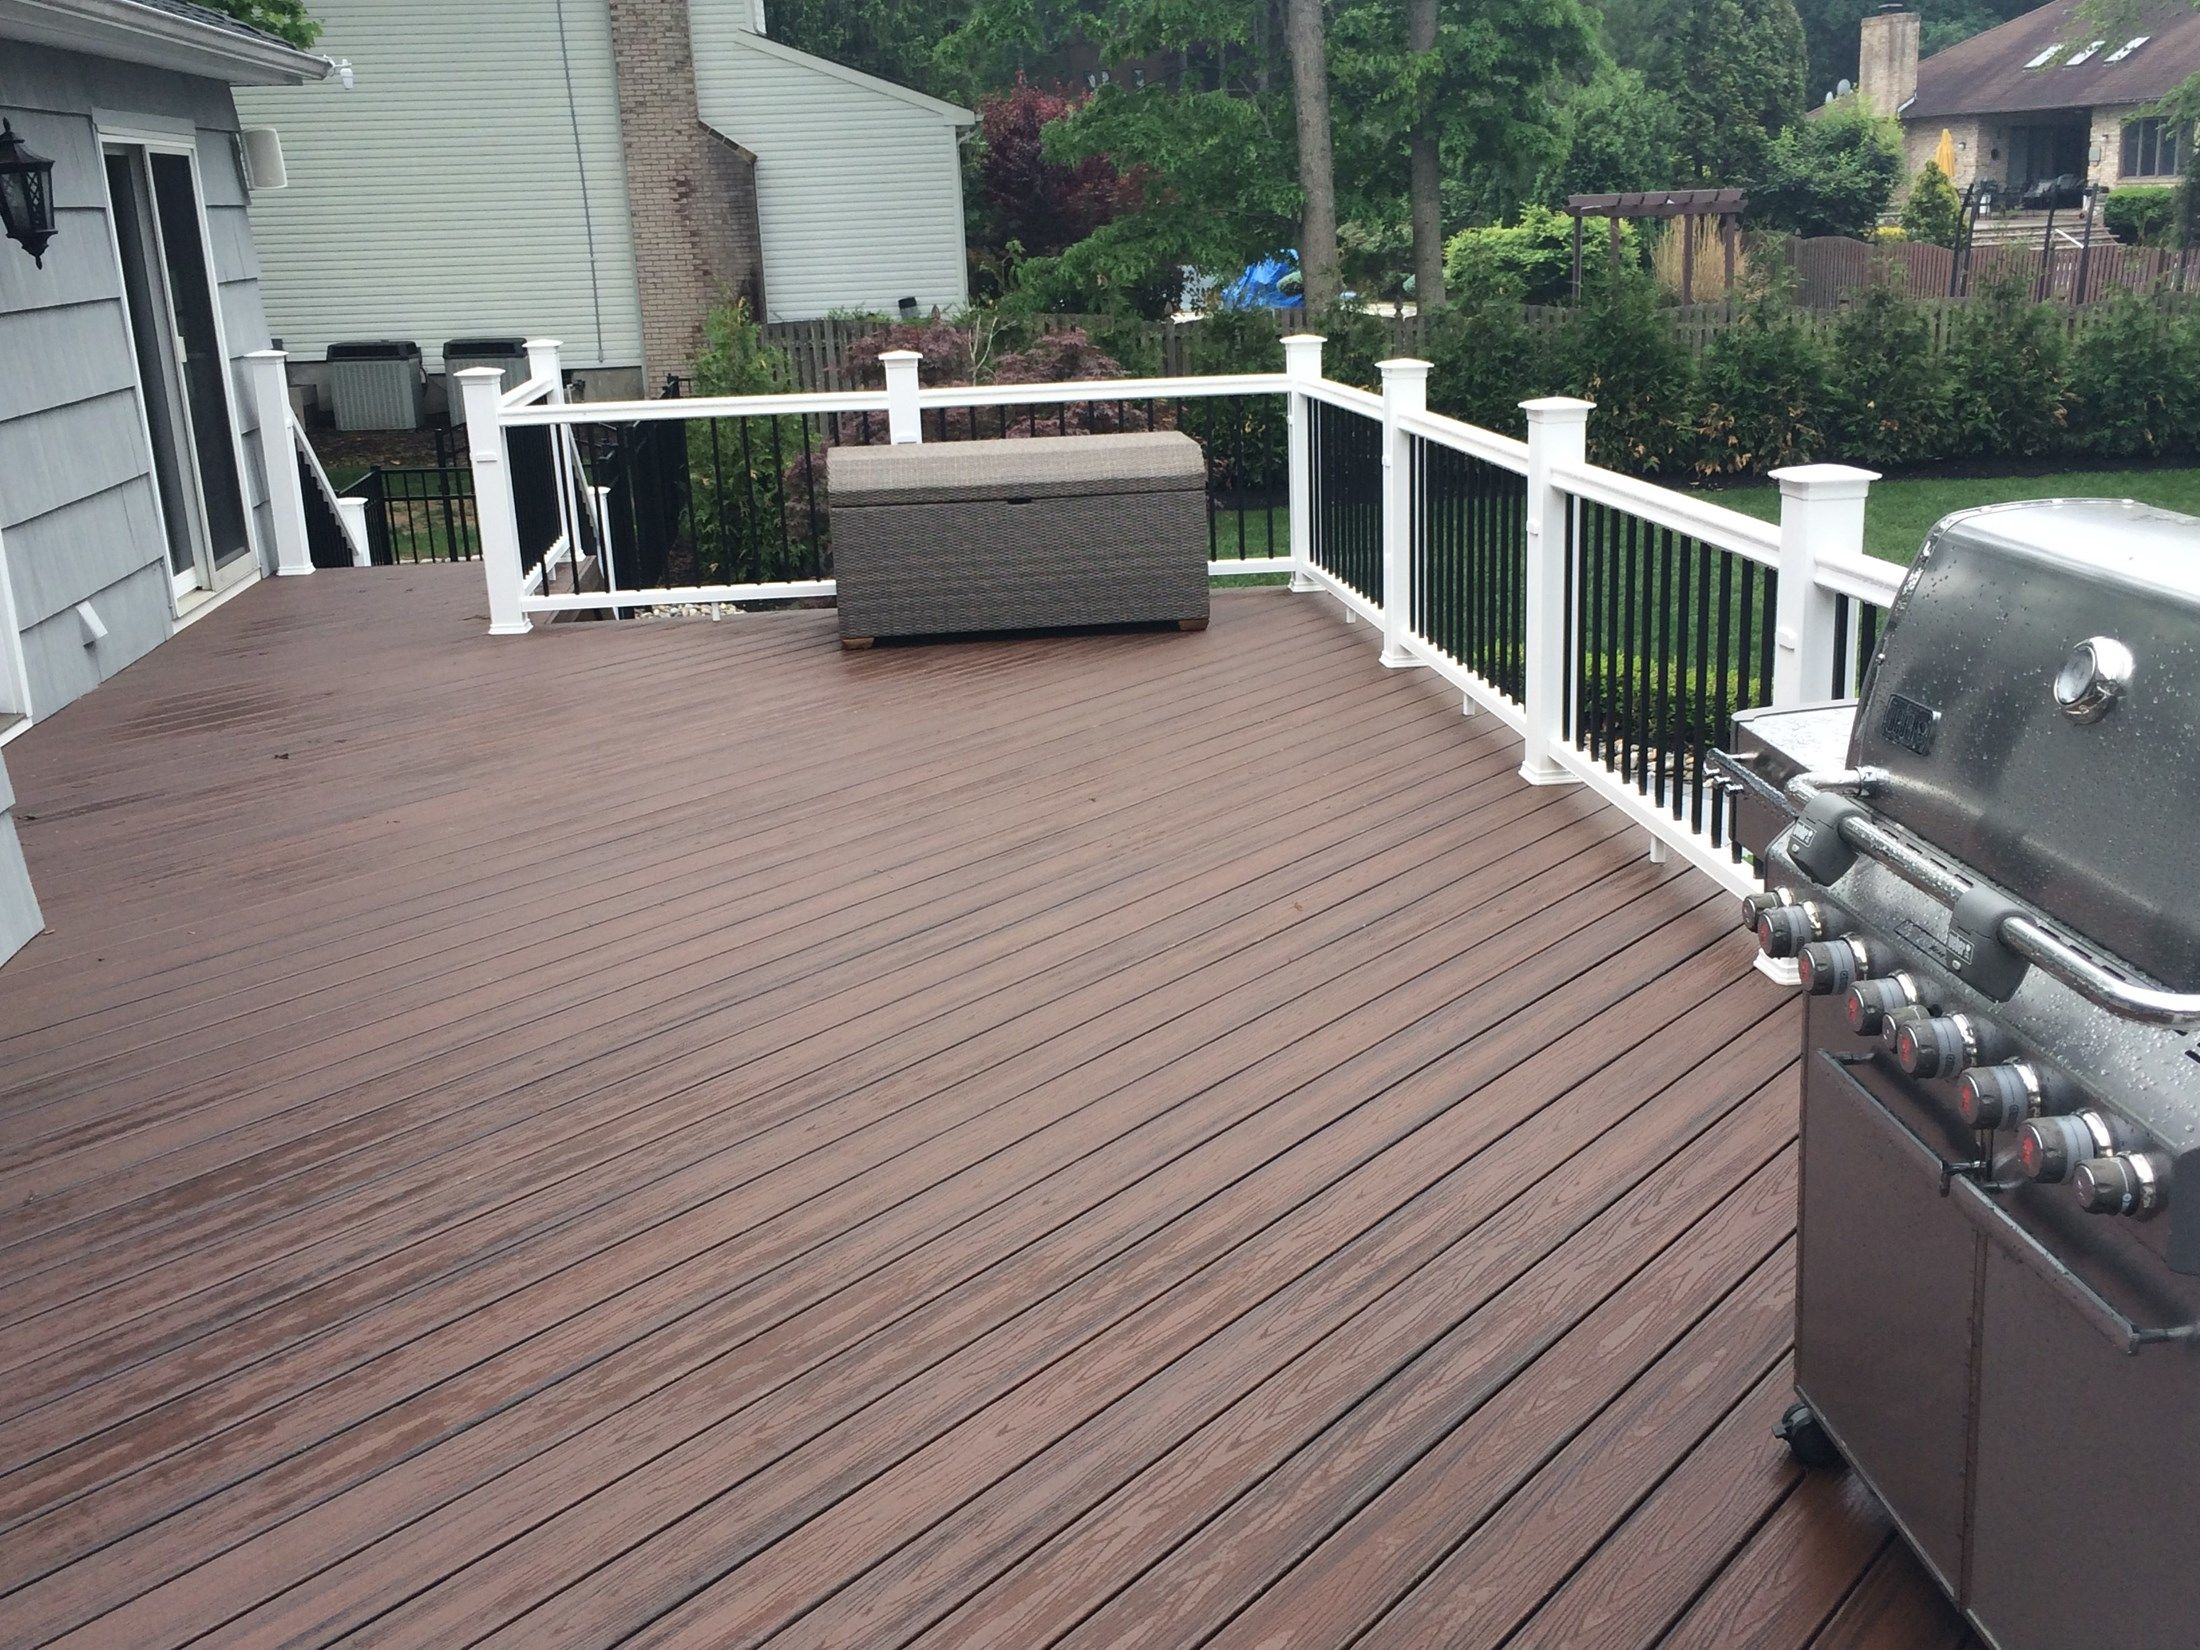 Custom Deck in Marlboro N.J. - Picture 3264